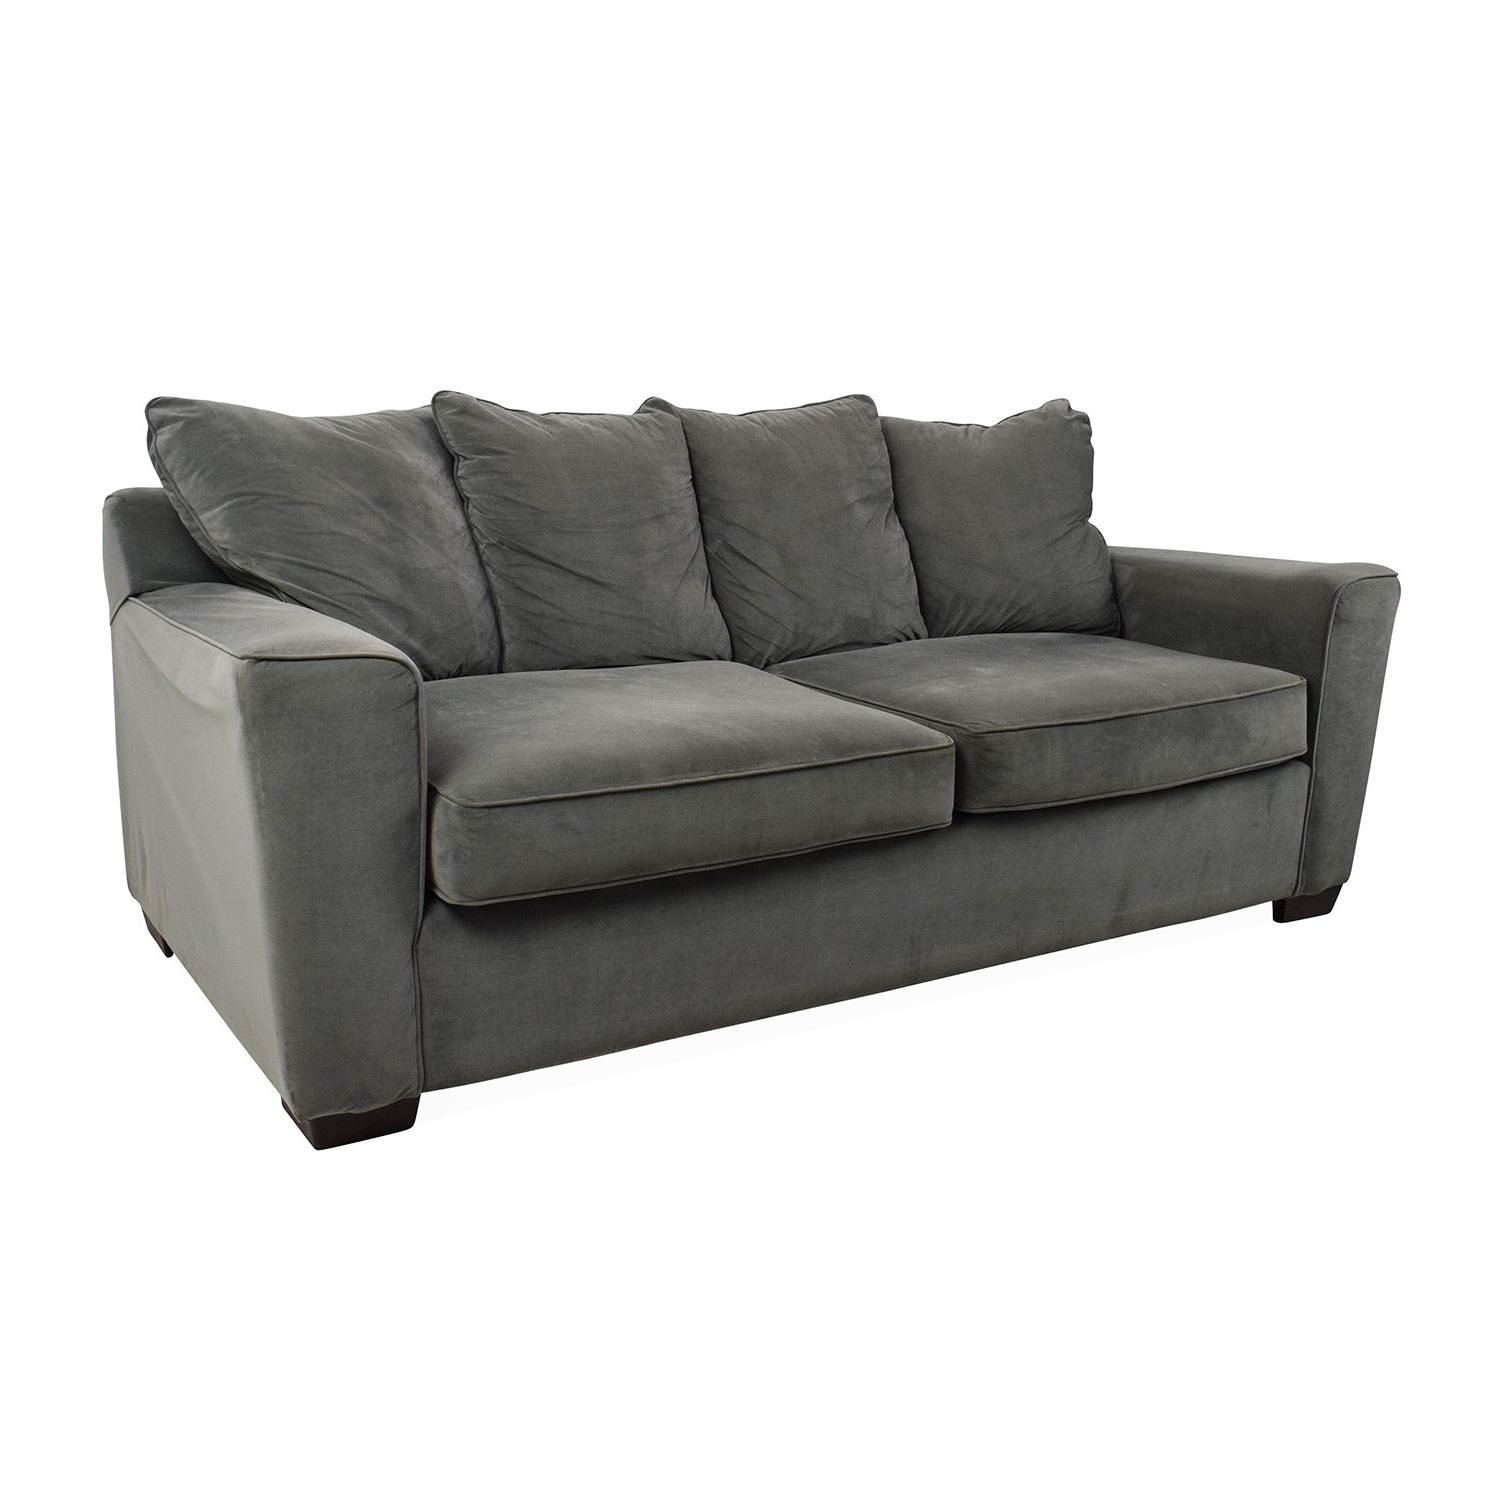 [%53% Off – Jennifer Convertibles Jennifer Convertibles Grey Couch Intended For Most Recently Released Jennifer Sofas|jennifer Sofas Inside Most Current 53% Off – Jennifer Convertibles Jennifer Convertibles Grey Couch|widely Used Jennifer Sofas Inside 53% Off – Jennifer Convertibles Jennifer Convertibles Grey Couch|most Current 53% Off – Jennifer Convertibles Jennifer Convertibles Grey Couch Intended For Jennifer Sofas%] (View 8 of 20)